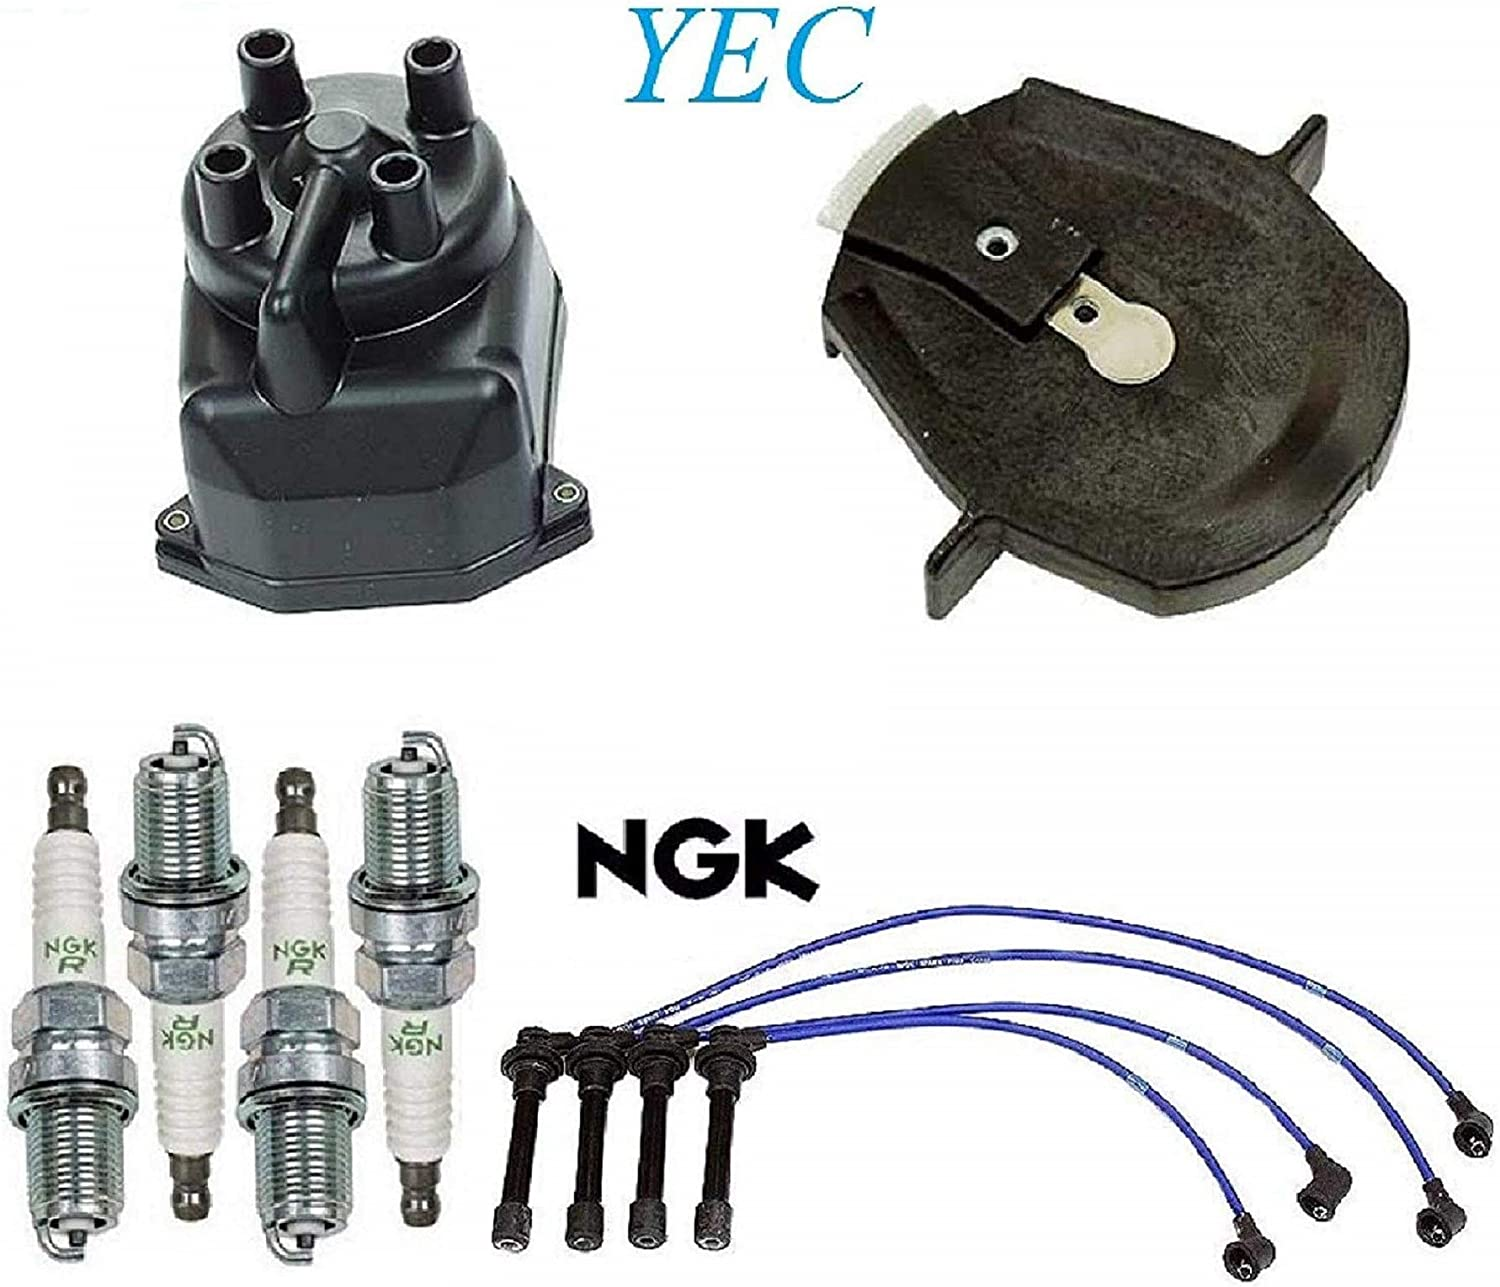 Tune Up Kit Cap Rotor Wires Plugs for Honda Accord DX; L4; 2.3L 1998-2002 F23A5 Eng.; Non V-Tec